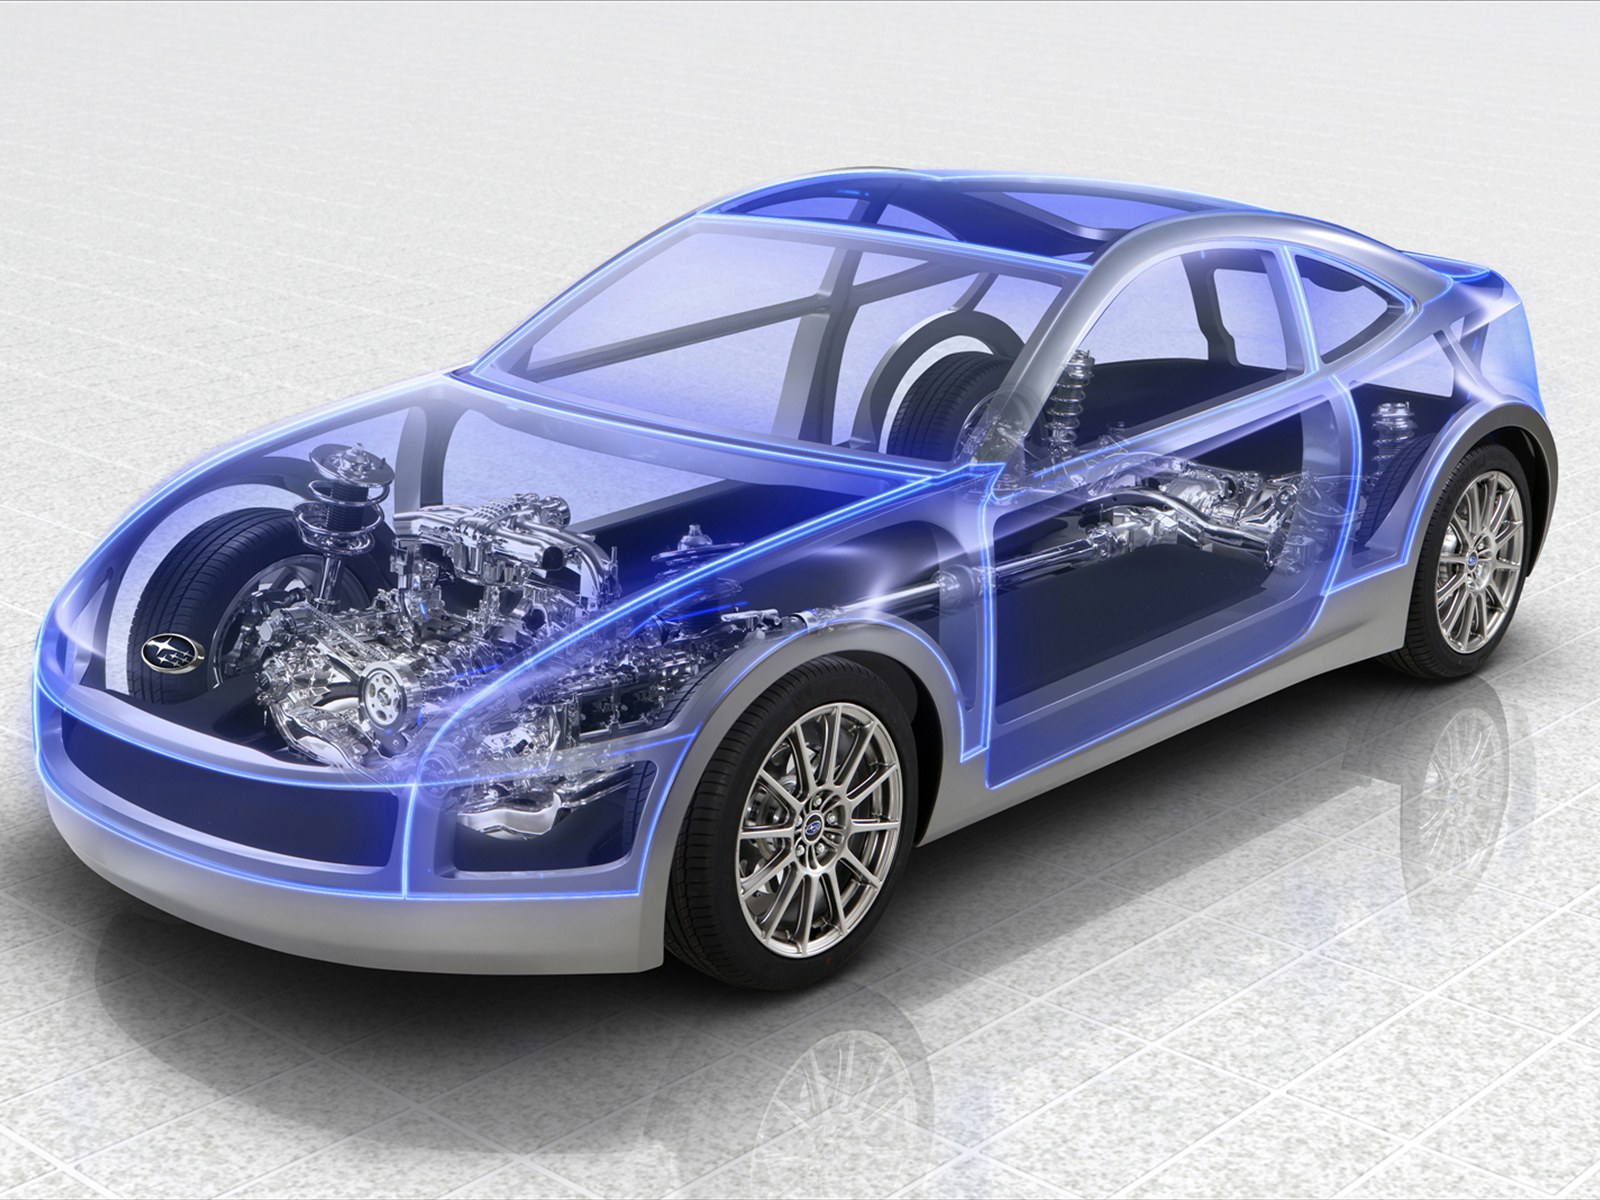 Car pictures subaru boxer sports car architecture 2011 for Coupe architecture